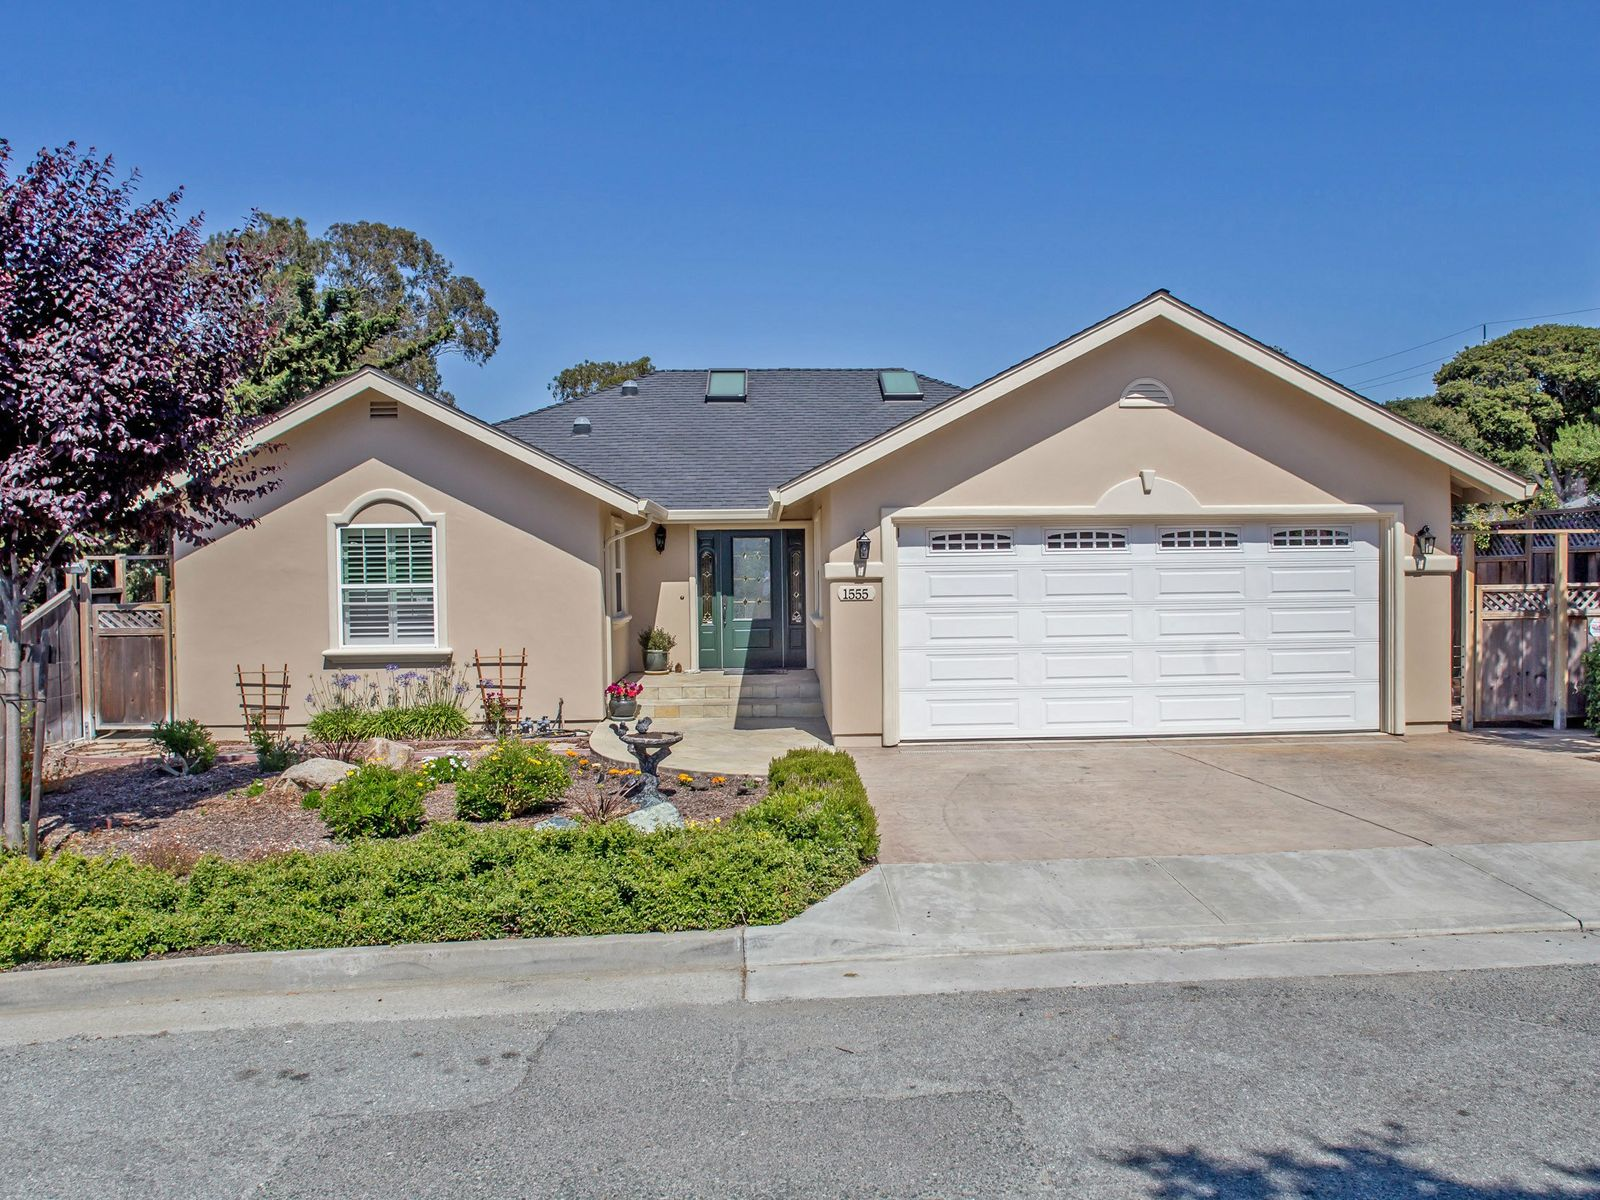 A Gem in Seaside, Seaside CA Single Family Home - Monterey Real Estate